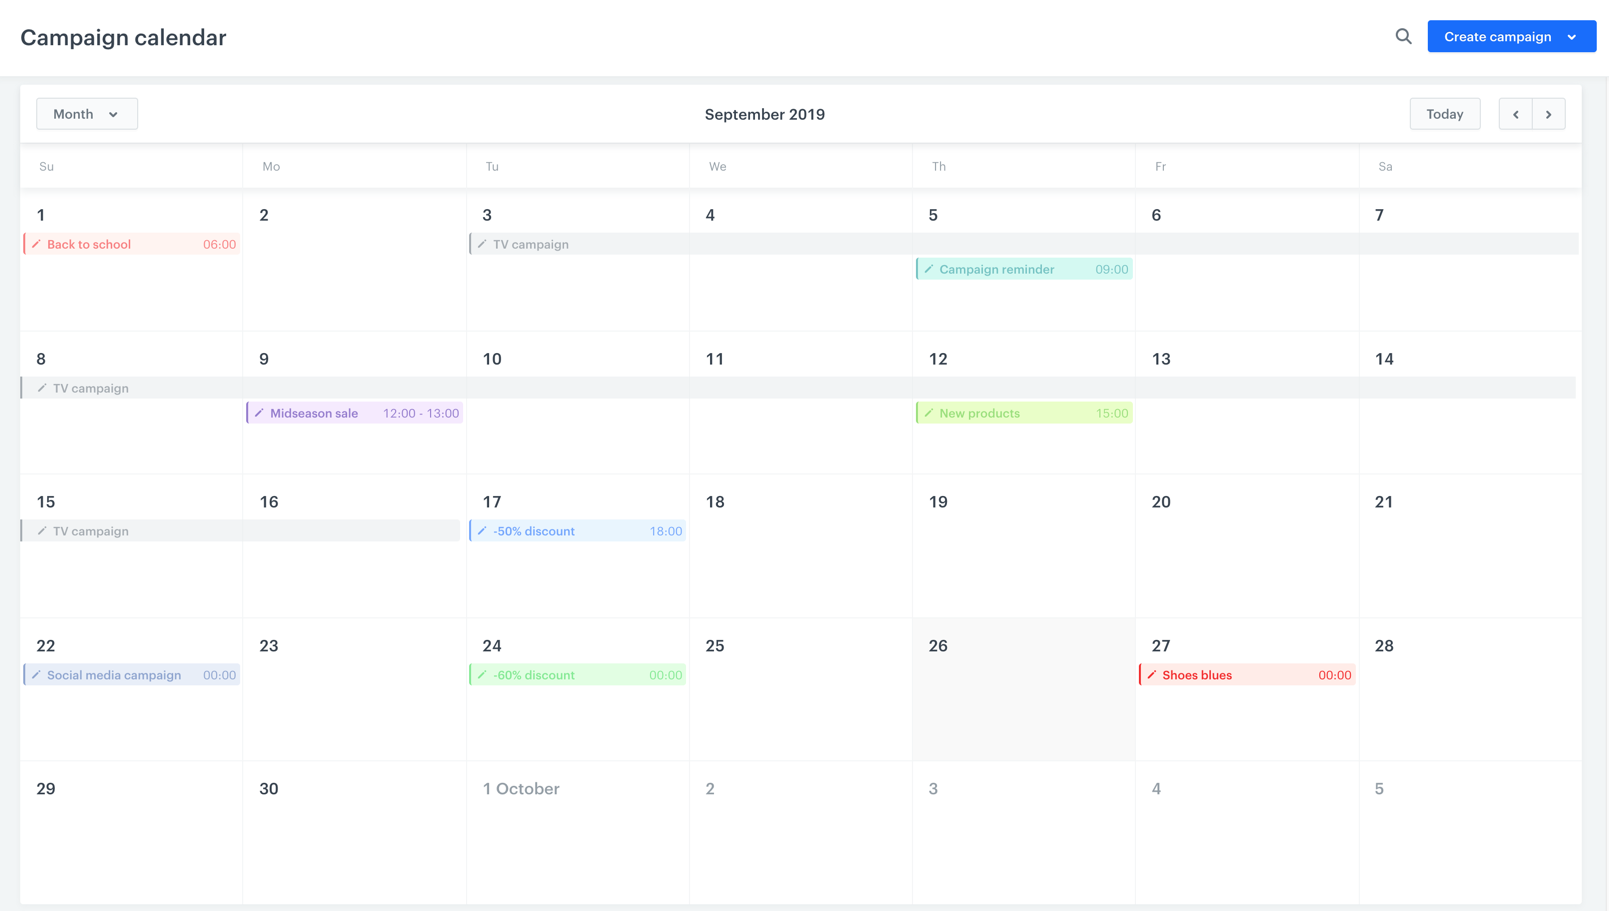 Universal marketing calendar for all campaigns you plan, even those unavailable in the app